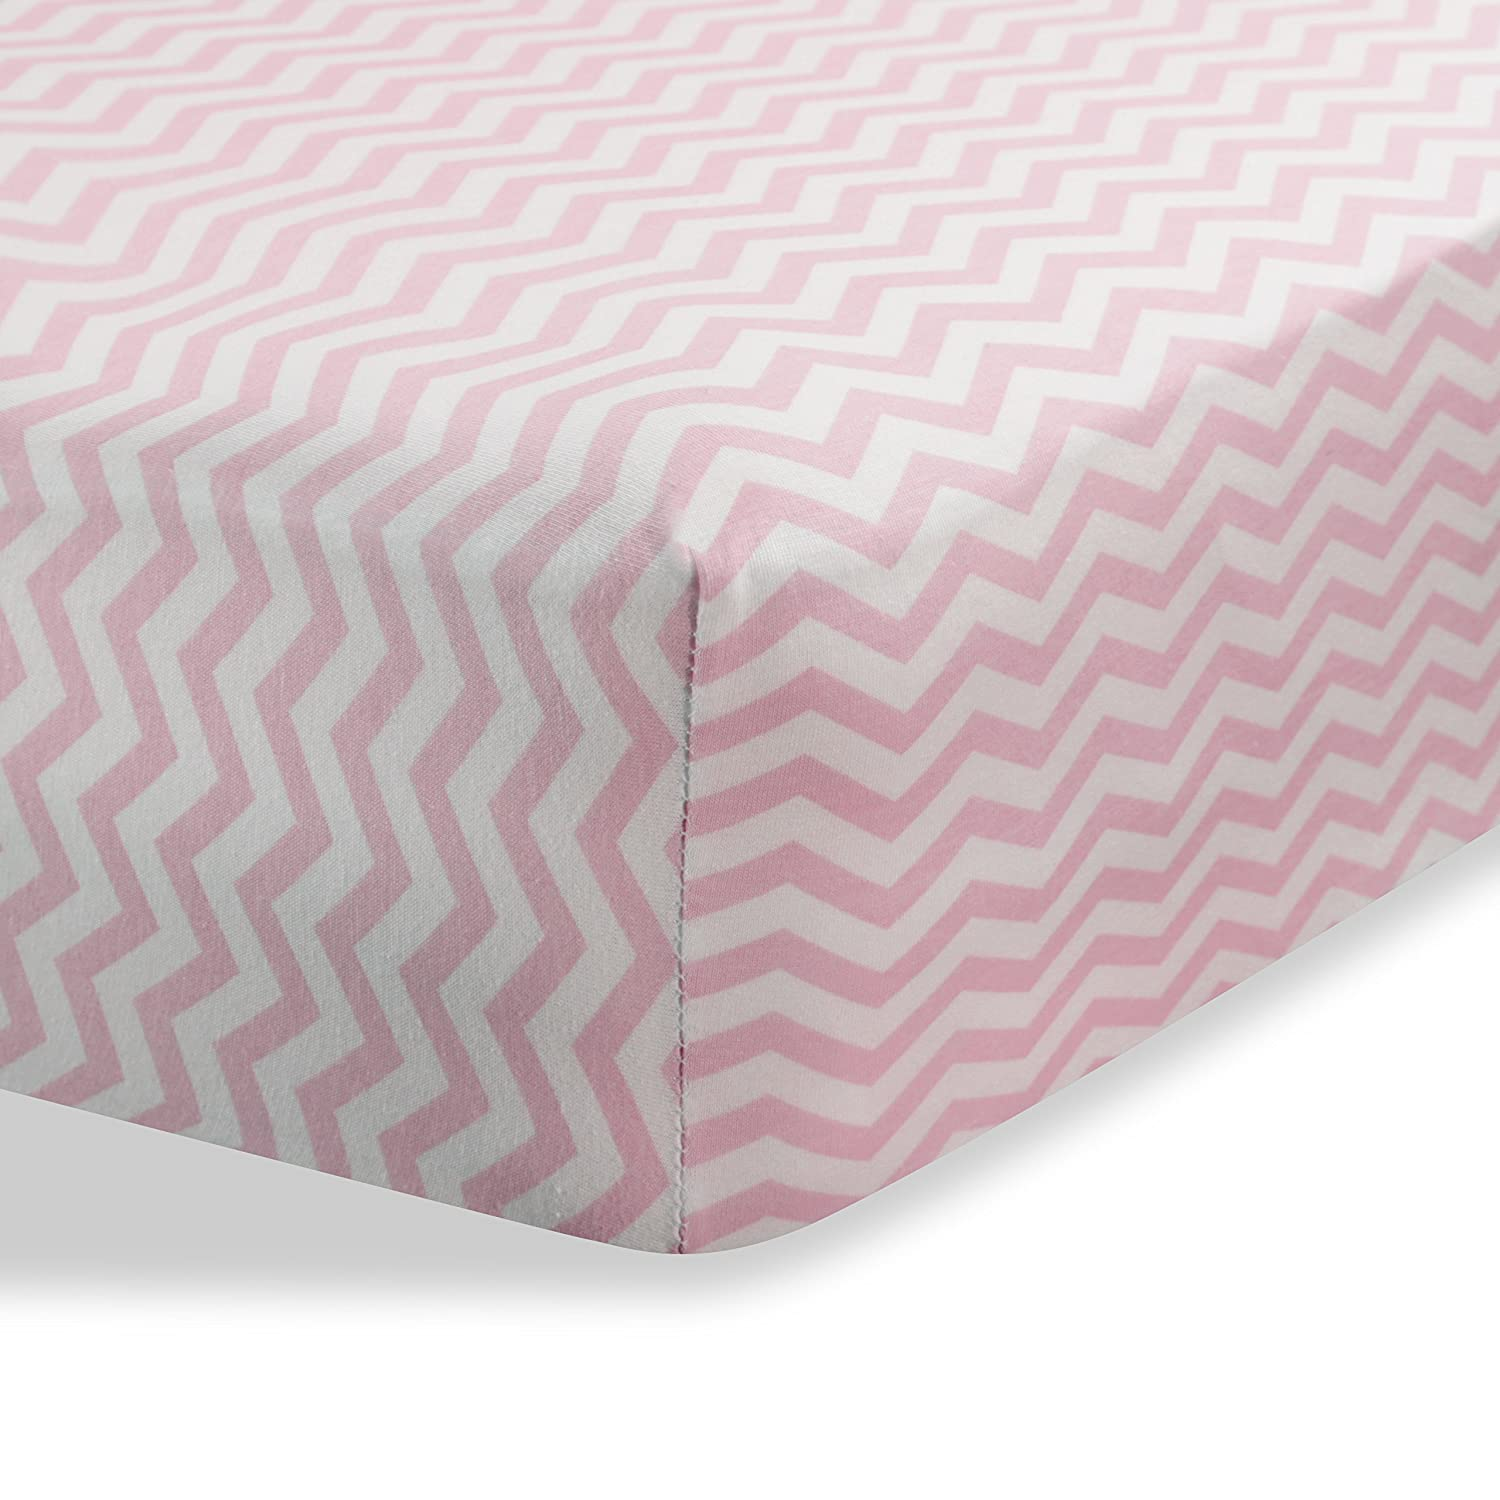 Bassinet sheets cradle sheets Abstract bassinet sheets cradle sheets for Baby / Infant Deep Fitted Soft Jersey Knit by Abstract 16 x 32 (Beige Zigzag)